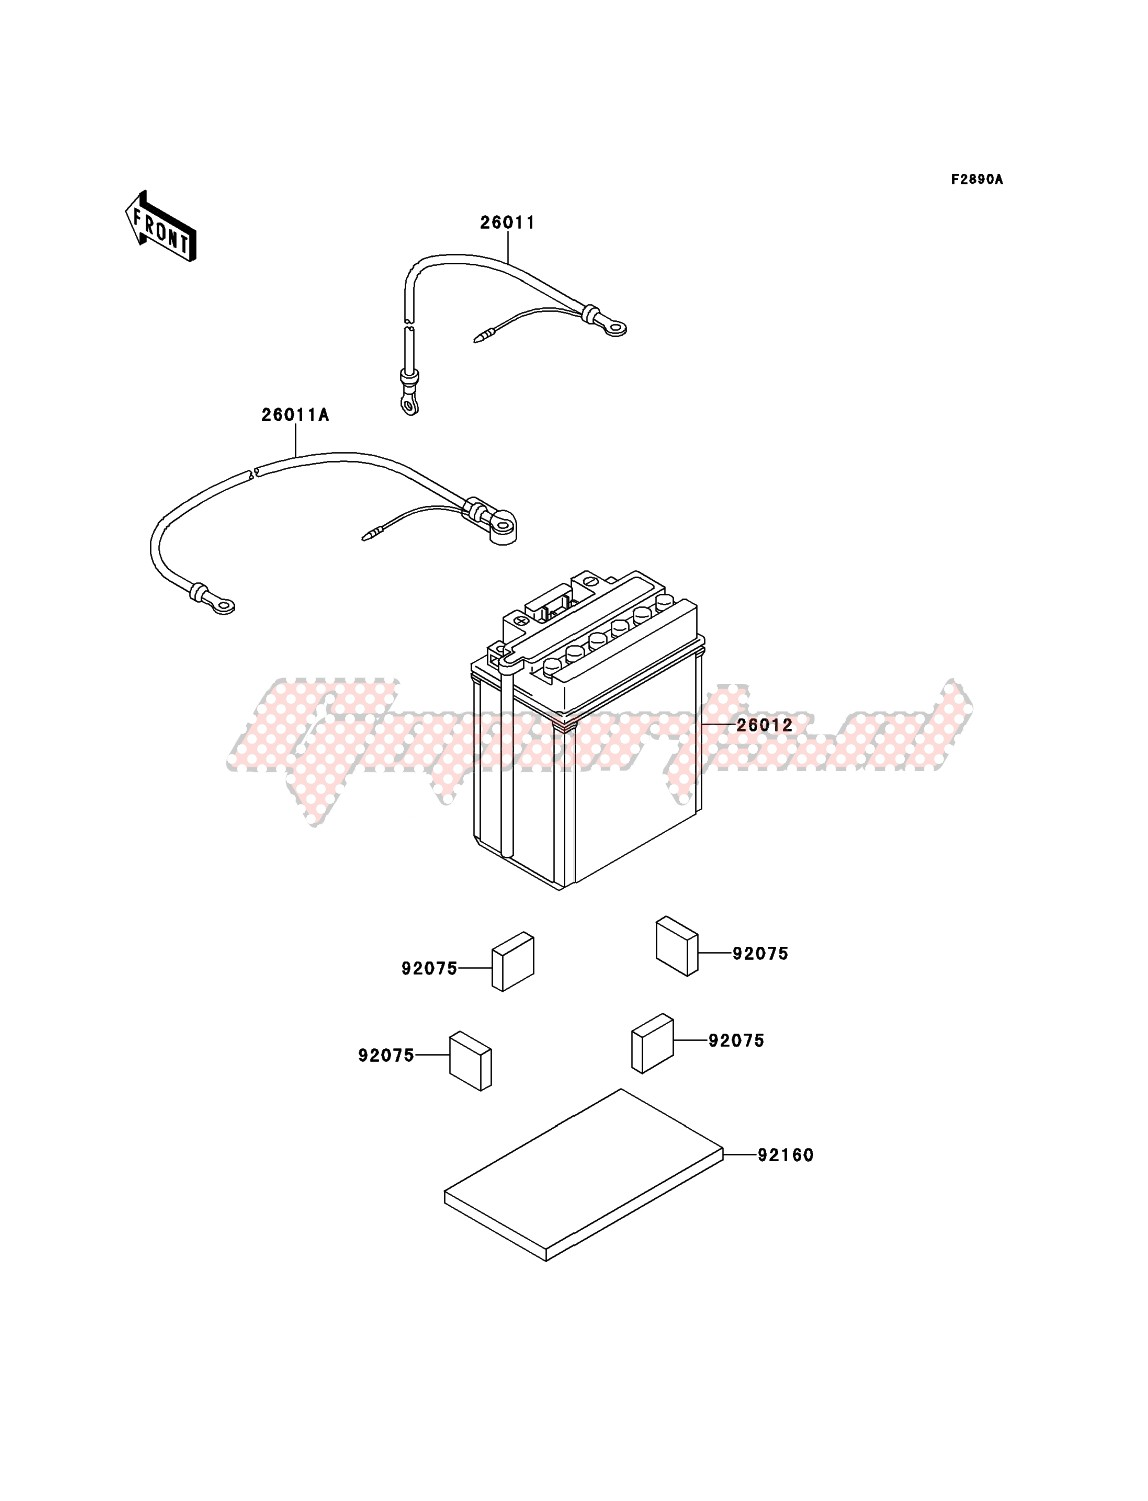 Optional Parts(Battery) image